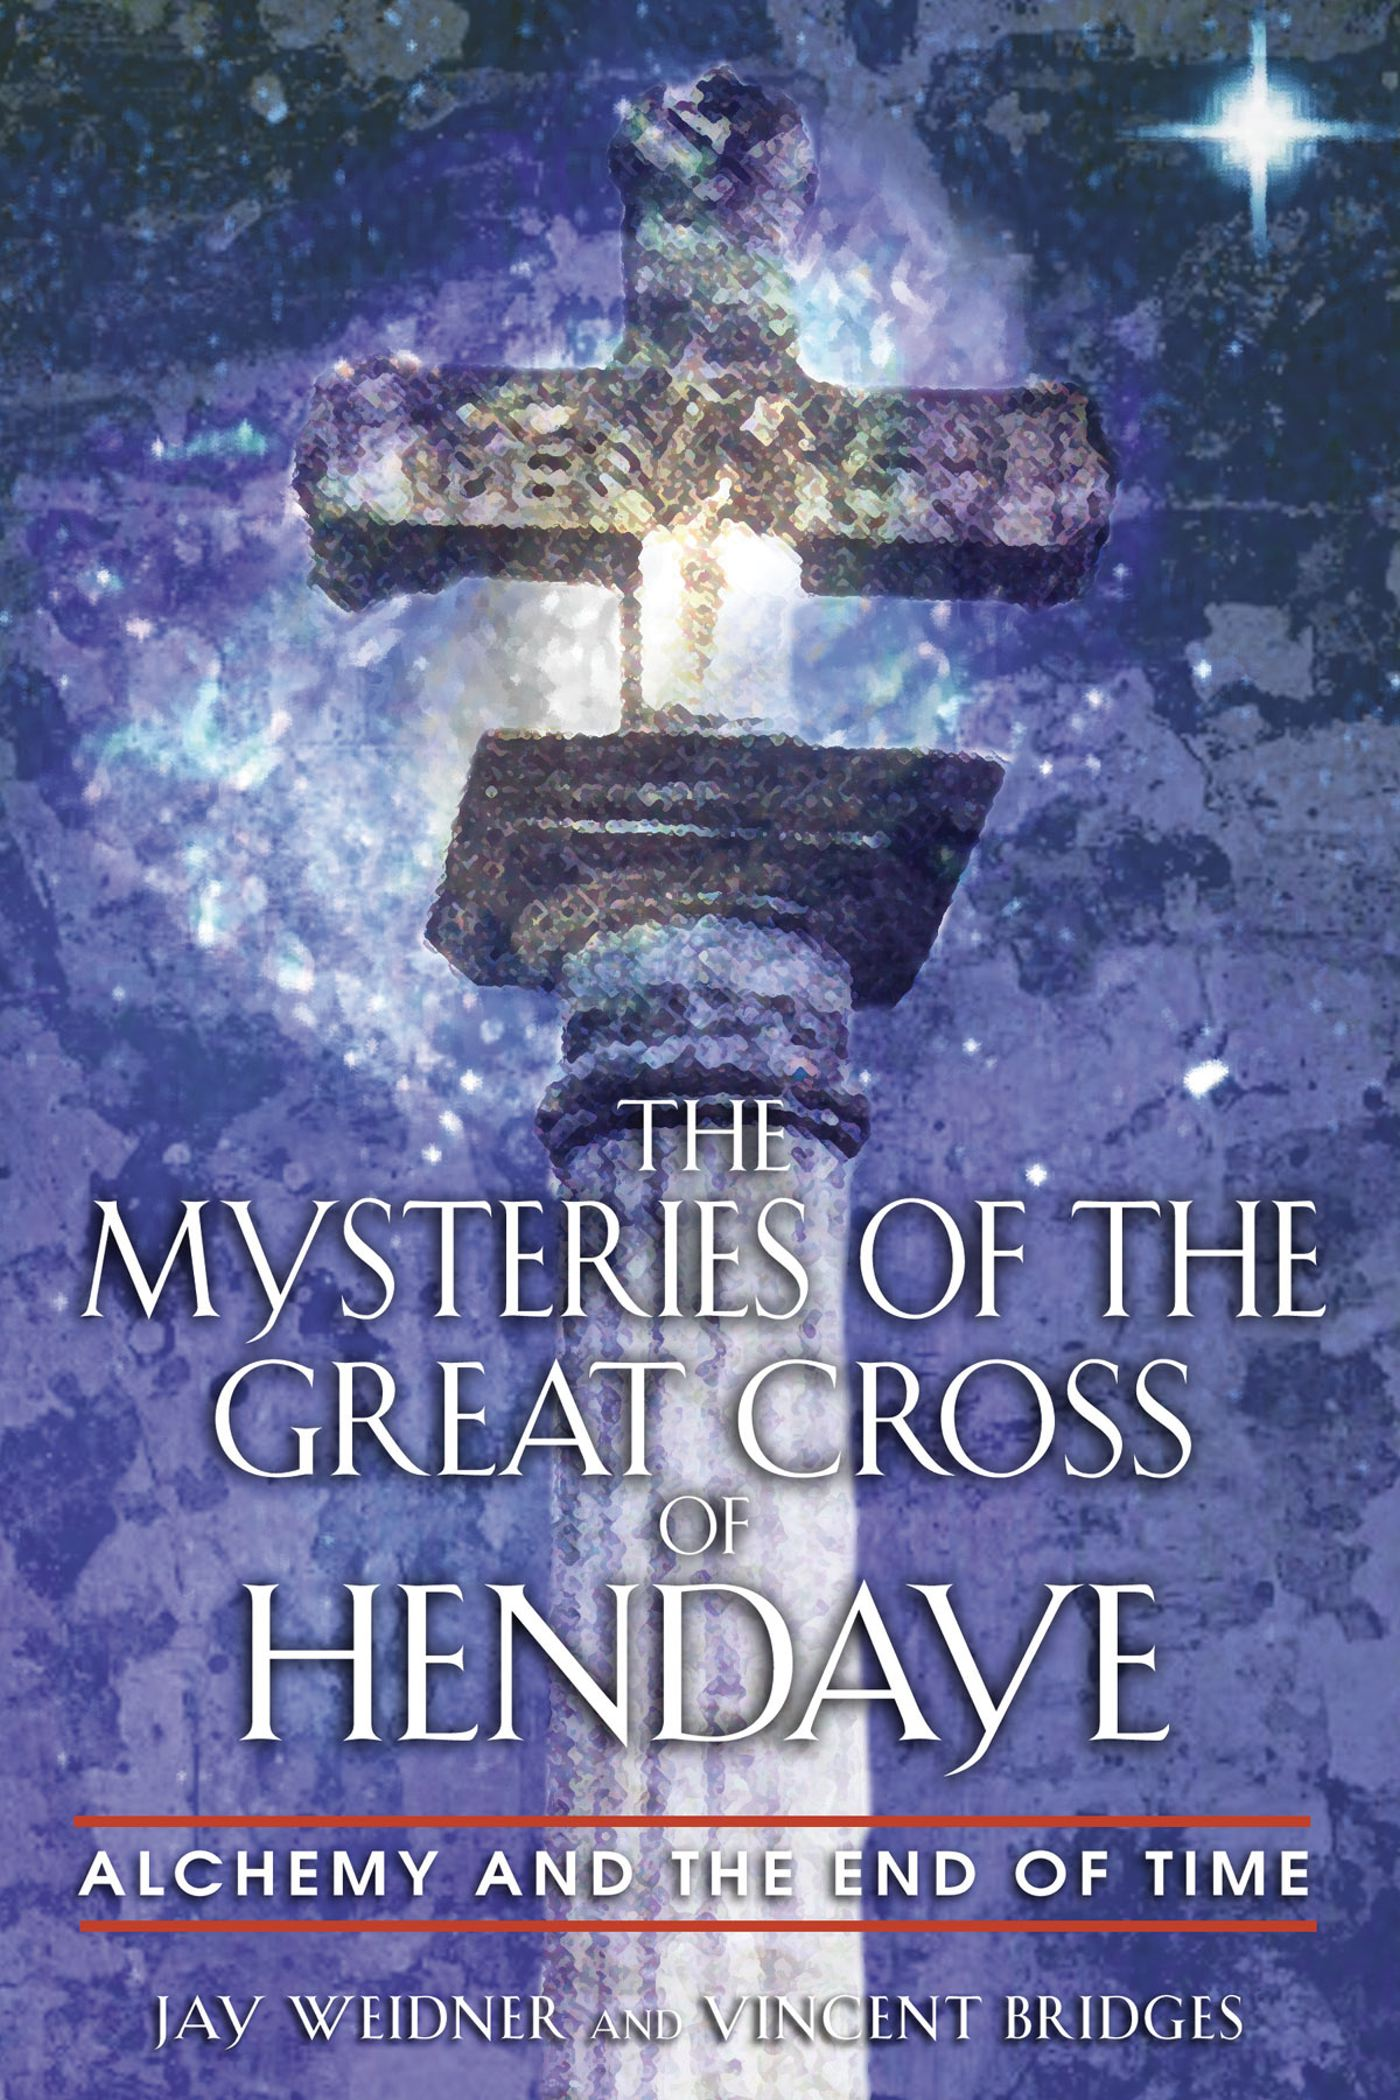 The-mysteries-of-the-great-cross-of-hendaye-9780892810840_hr